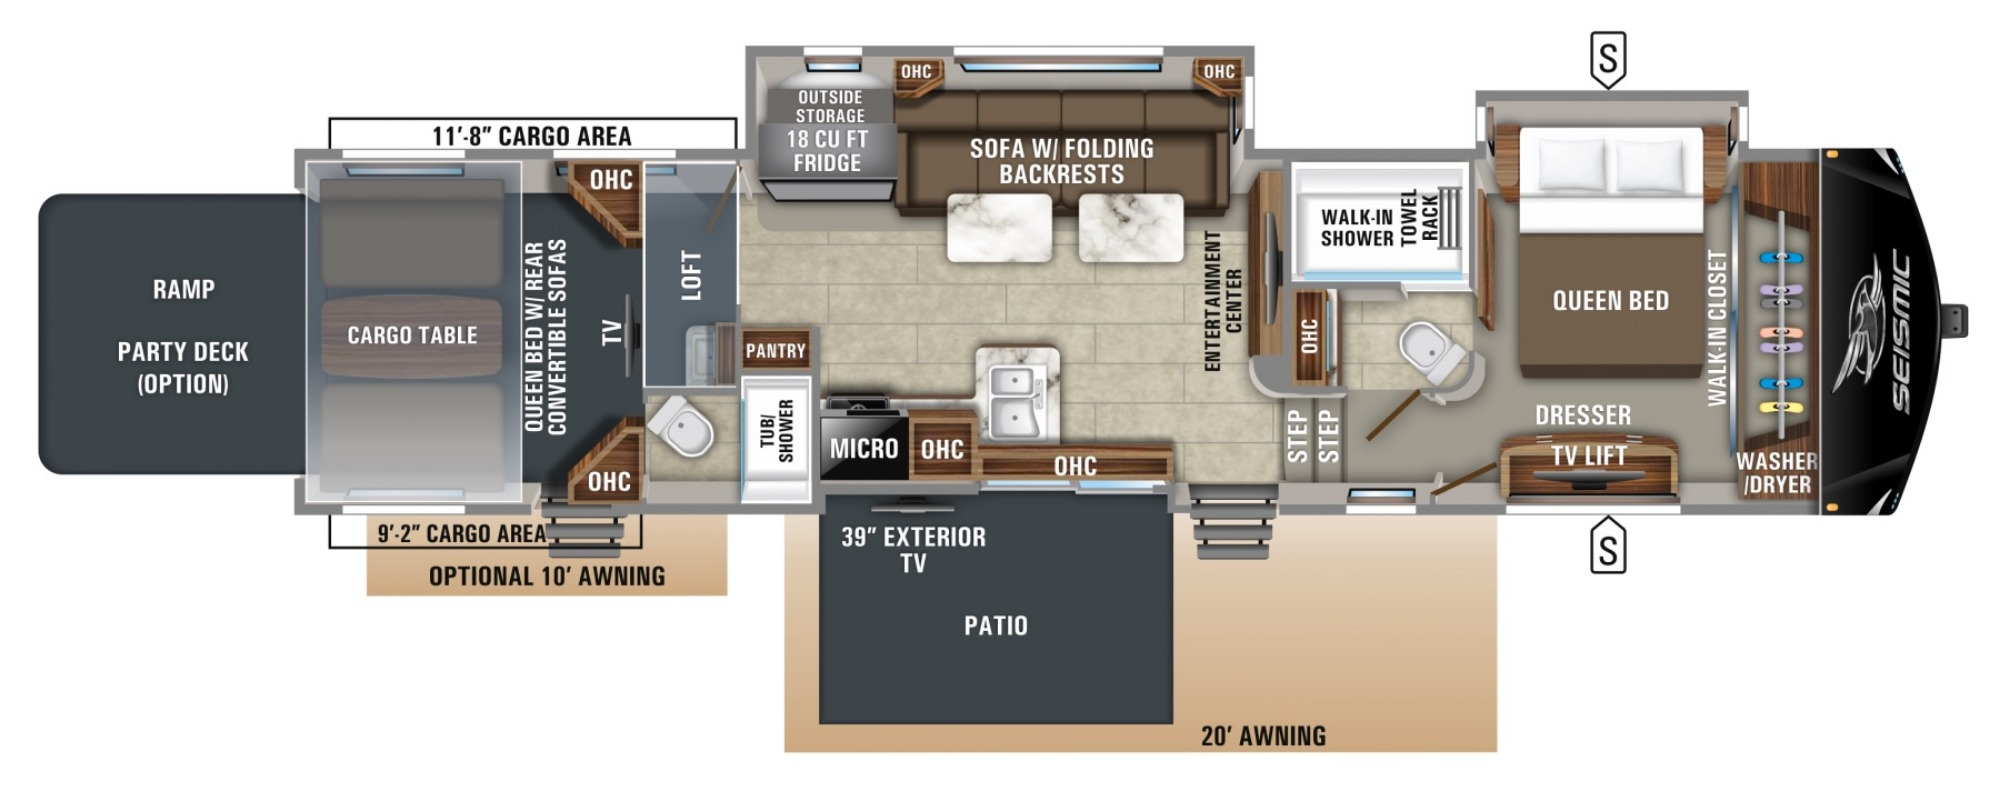 Floor Plan : 2019-JAYCO-4212